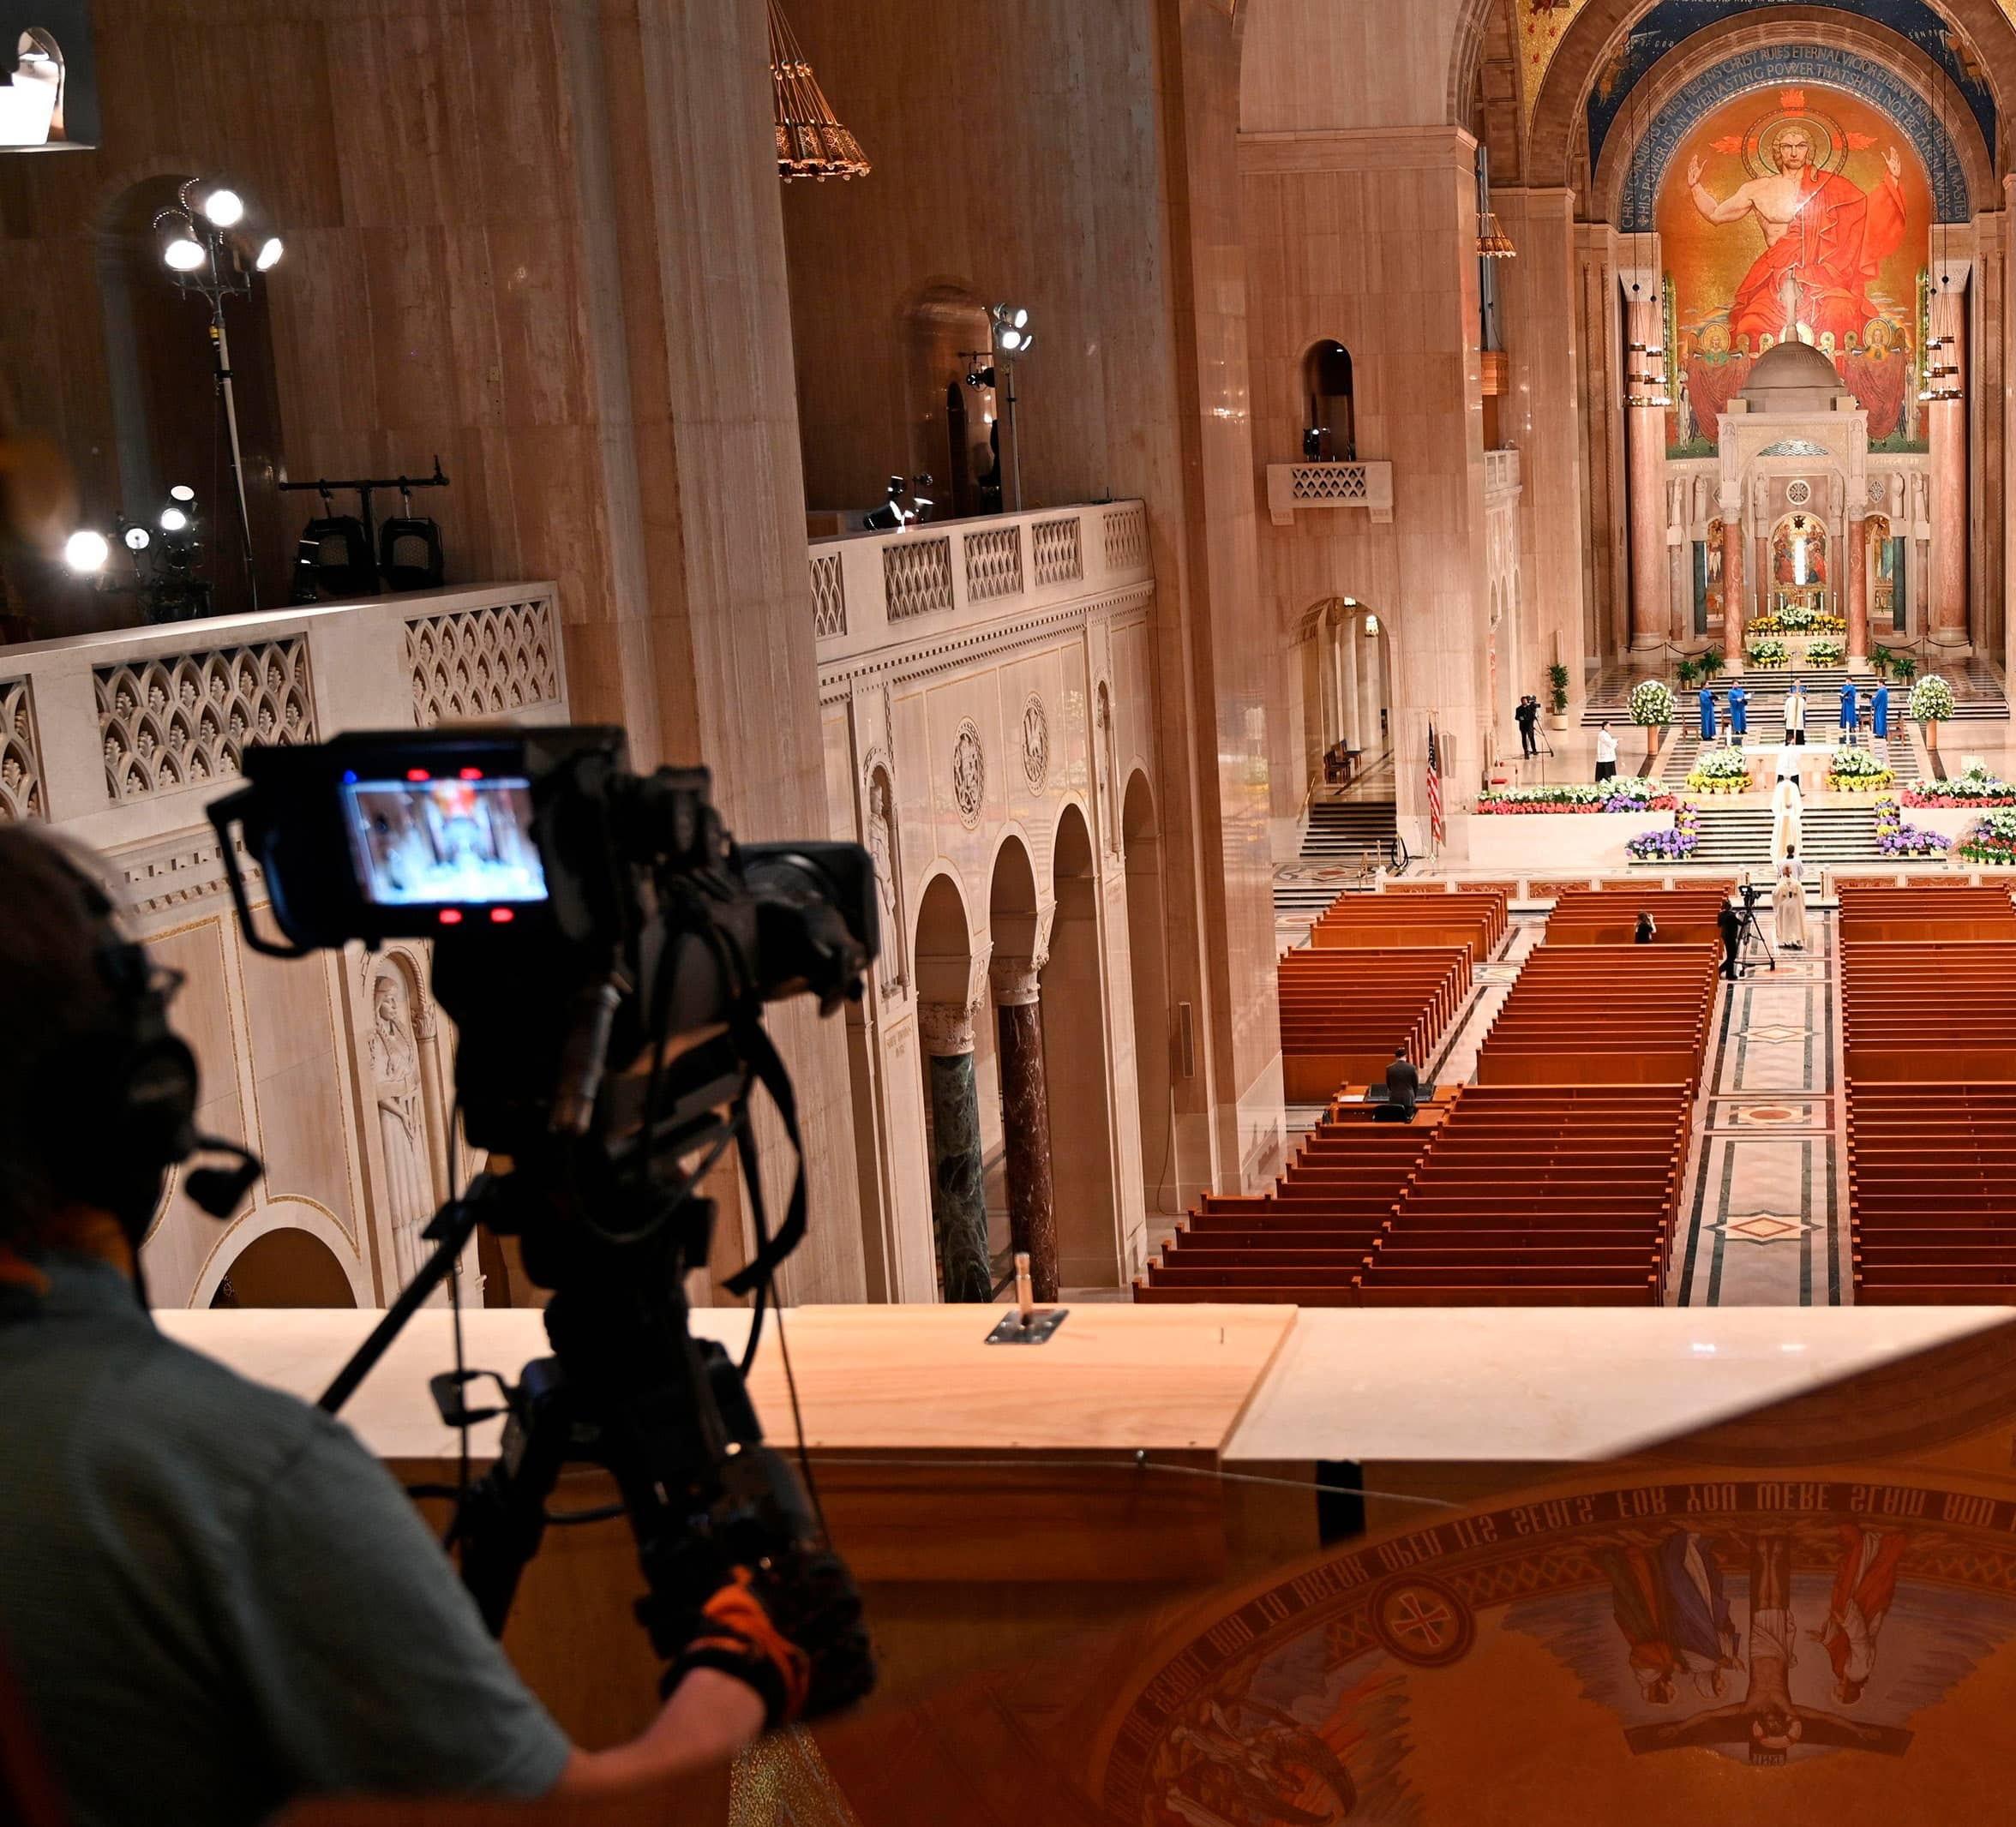 HOUSES OF WORSHIP GAIN AUDIENCE BY GOING ONLINE DURING VIRUS